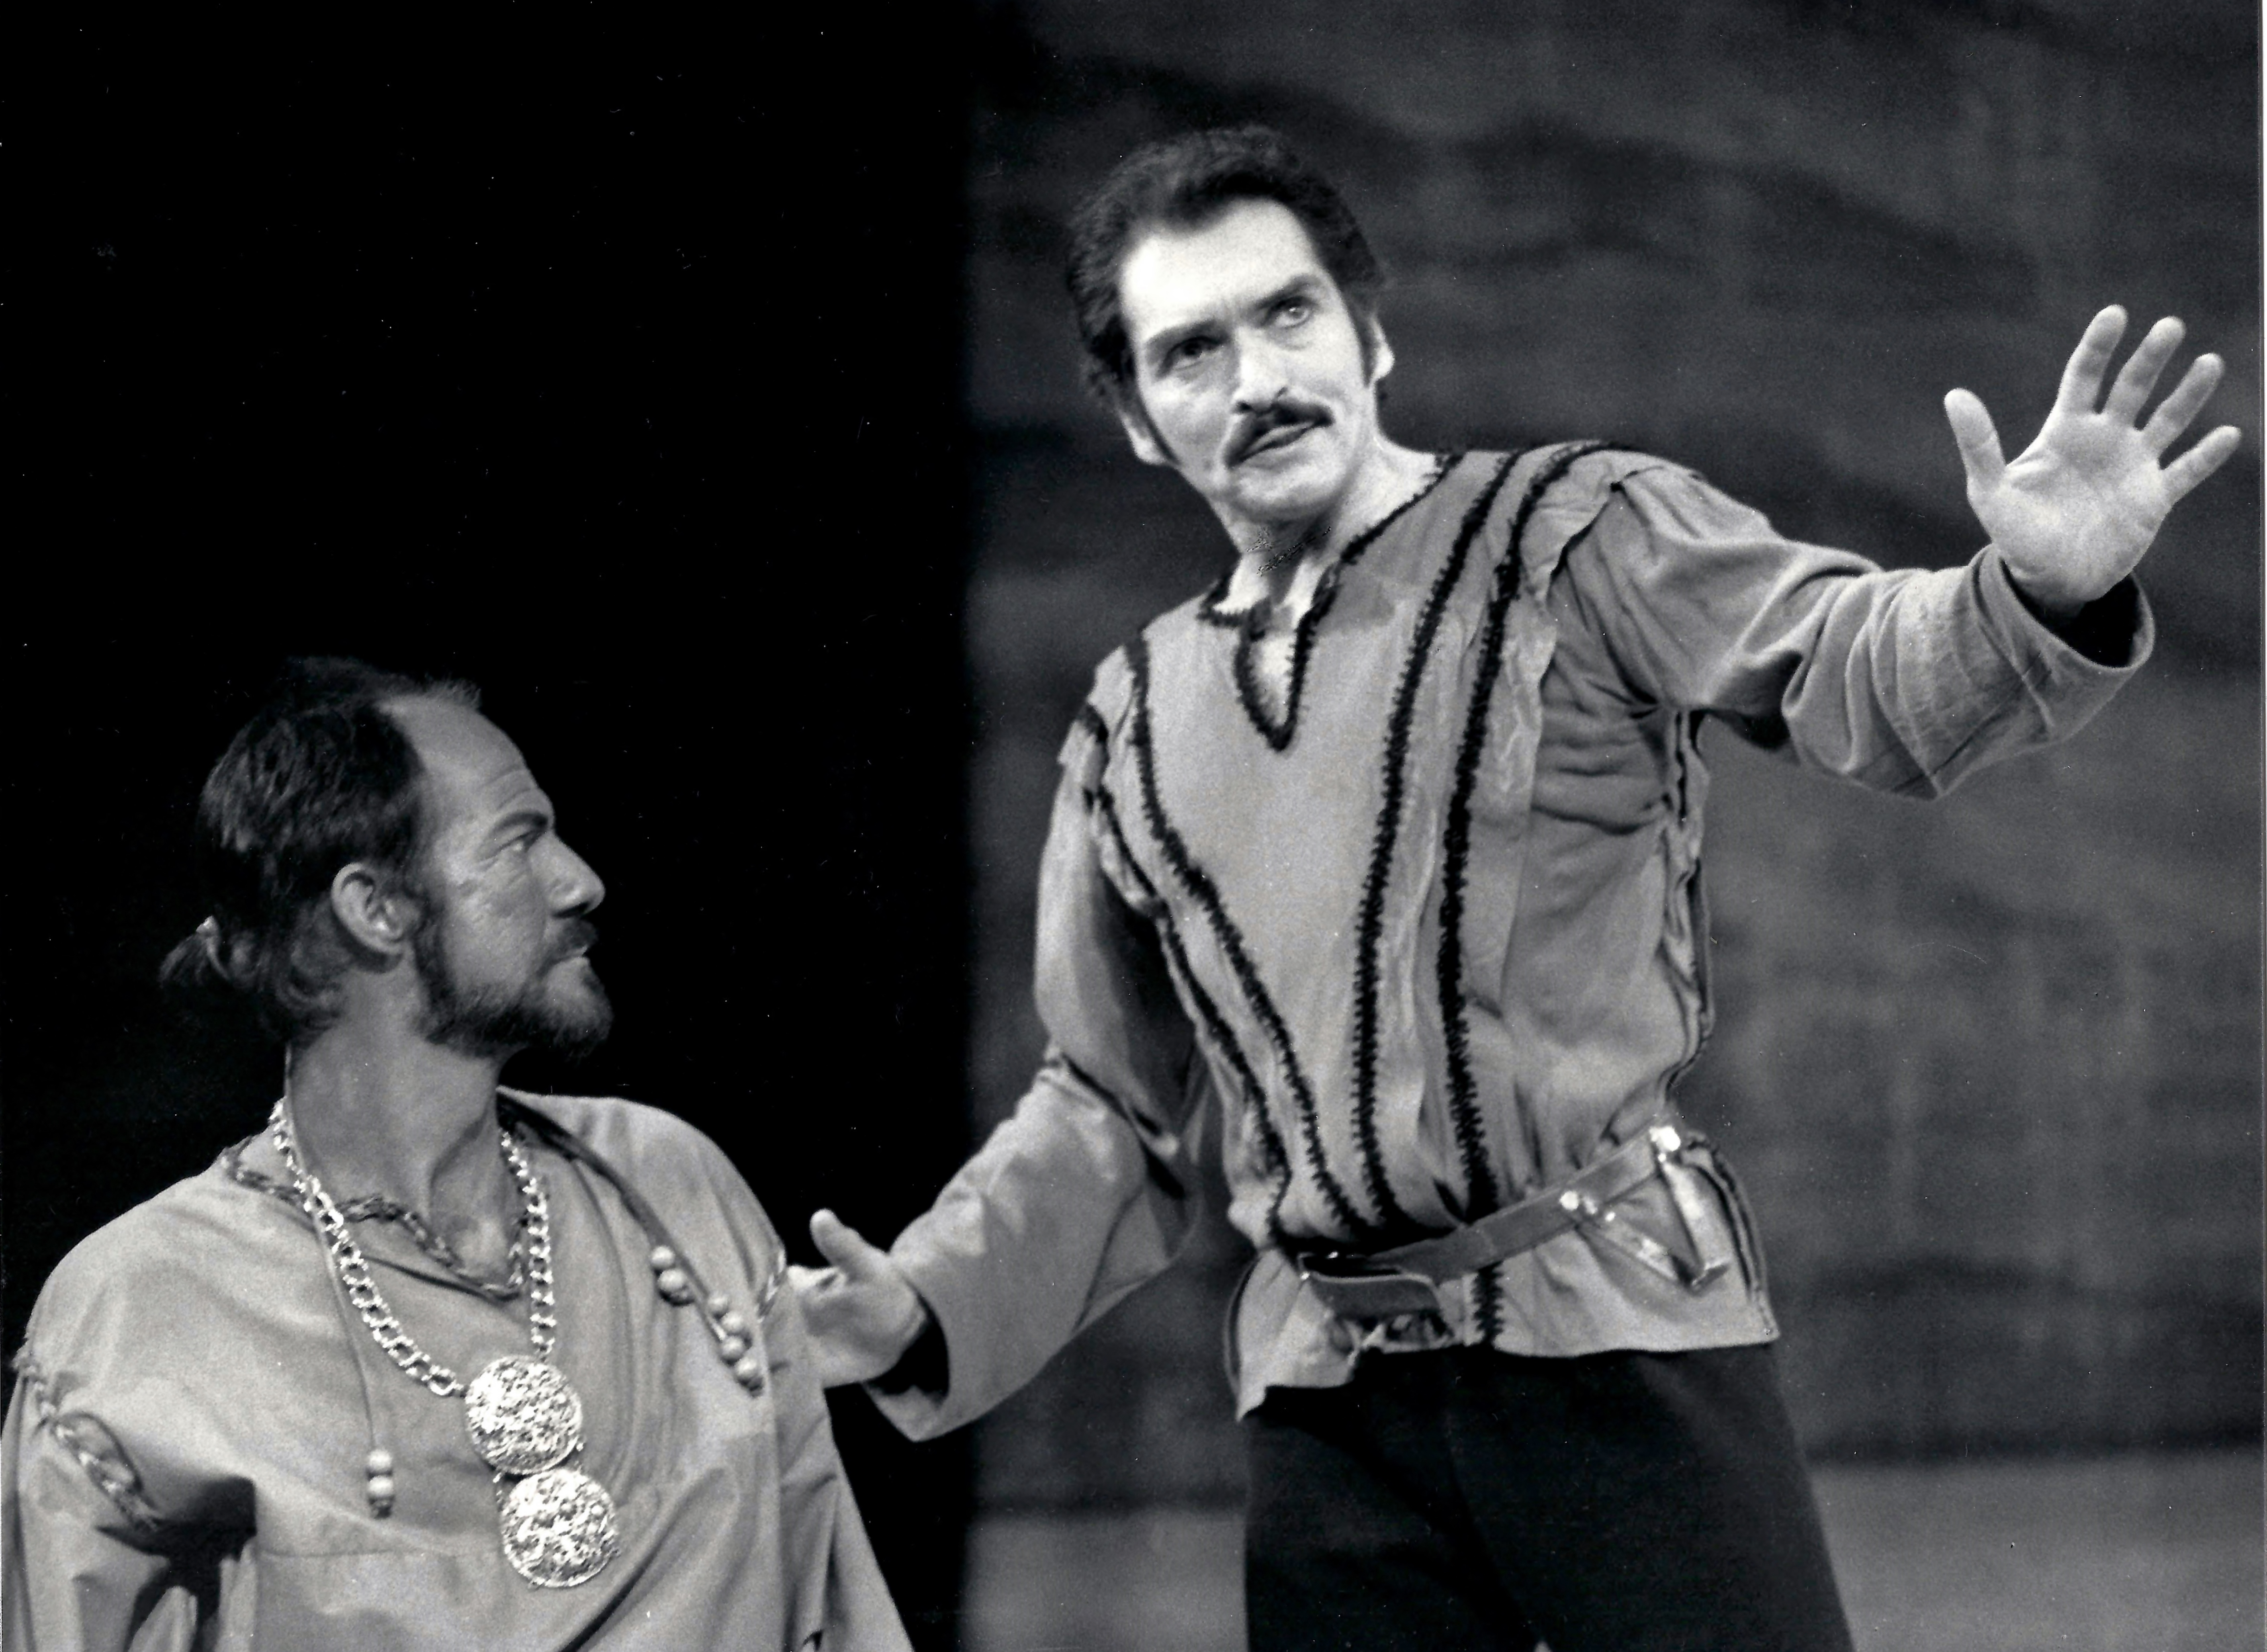 Iago destroys Othello Shakespeare classic theatre international Alexander Barnett clark_.jpg